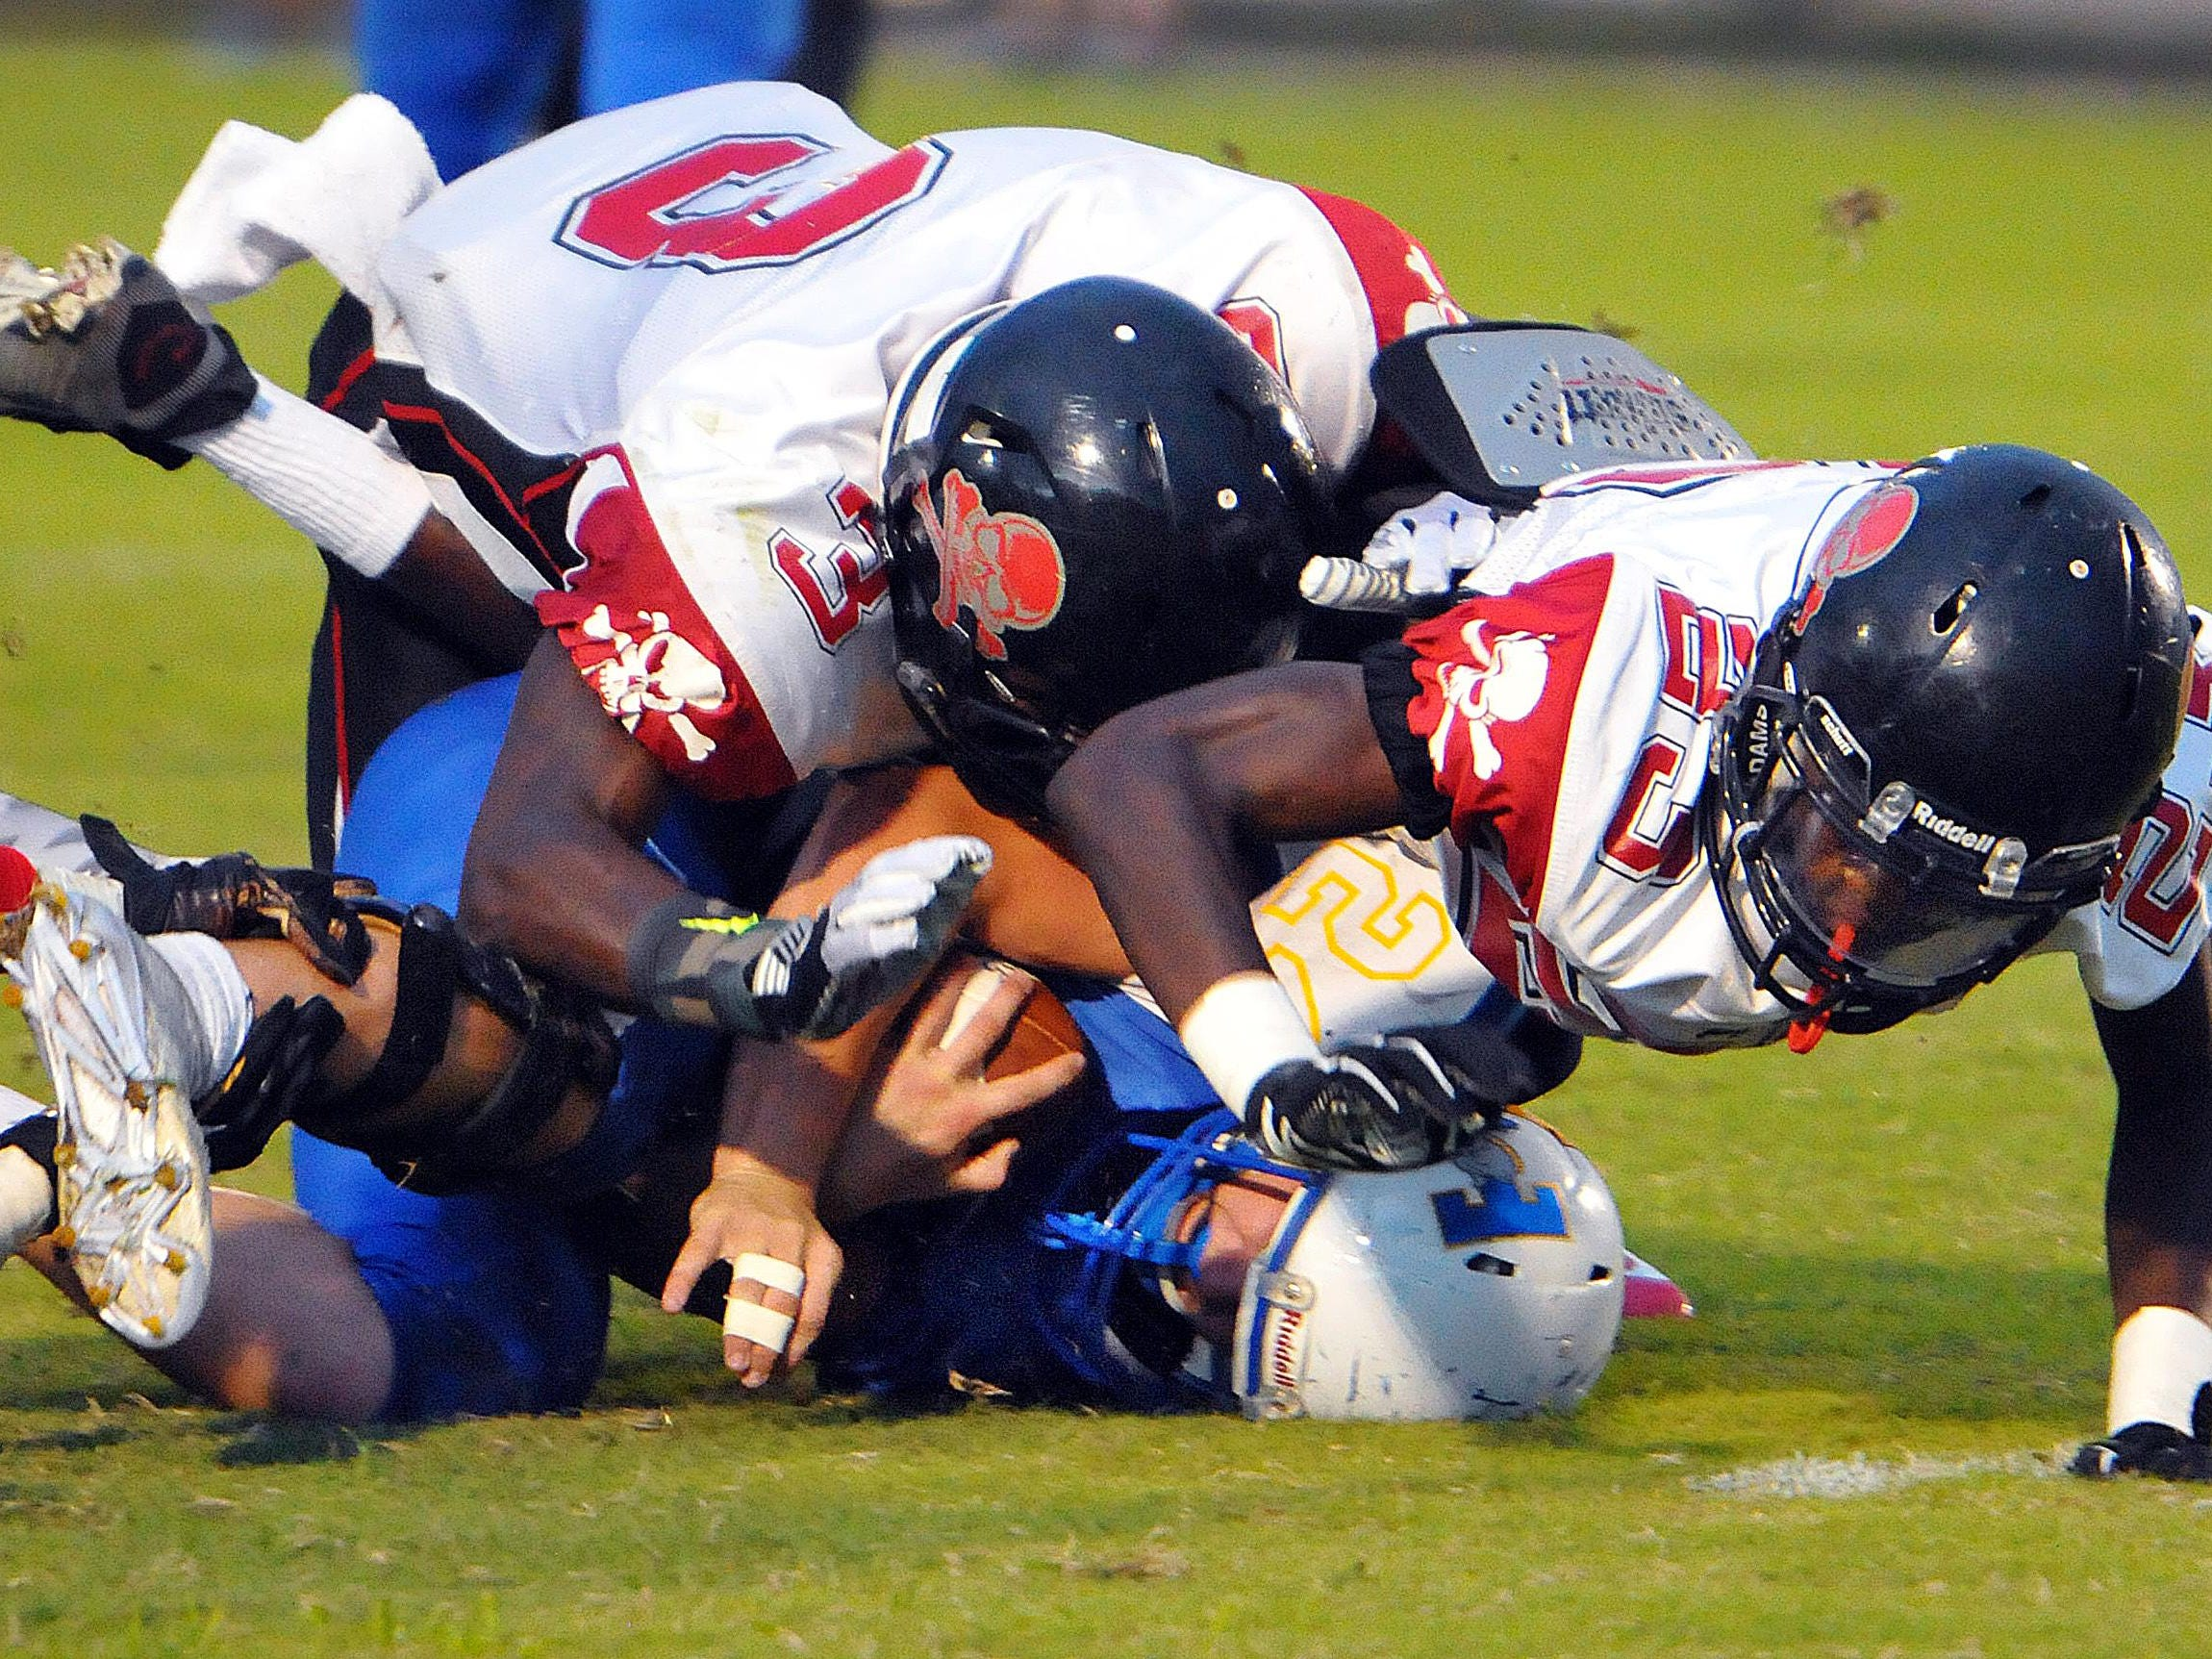 Titusville High's Jacob Farris (24) is tackled on a return by Palm Bay High's Desmond Arthur (3) and Ozzie Samuel (23) during Friday night's game at Titusville High School.